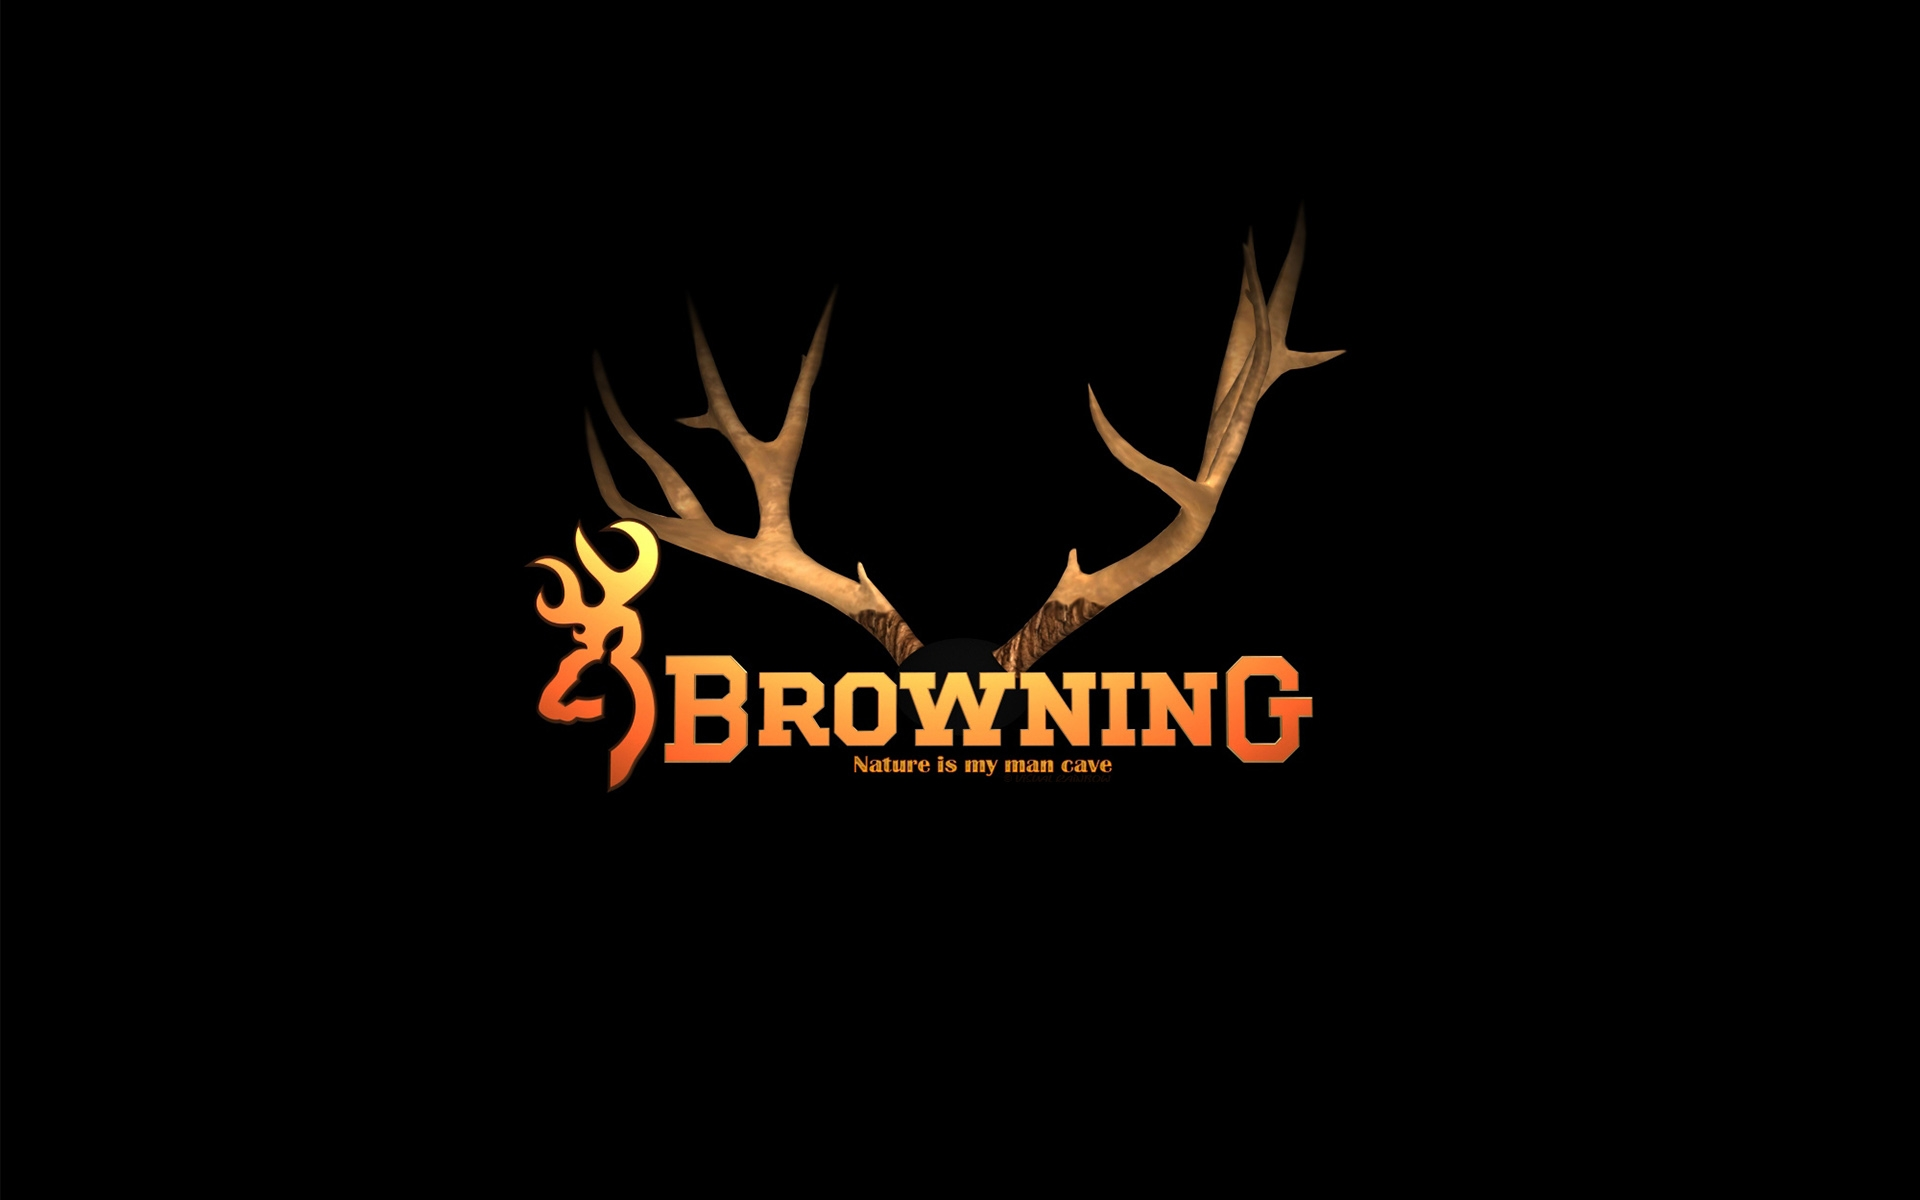 Browning wallpaper   977241 1920x1200